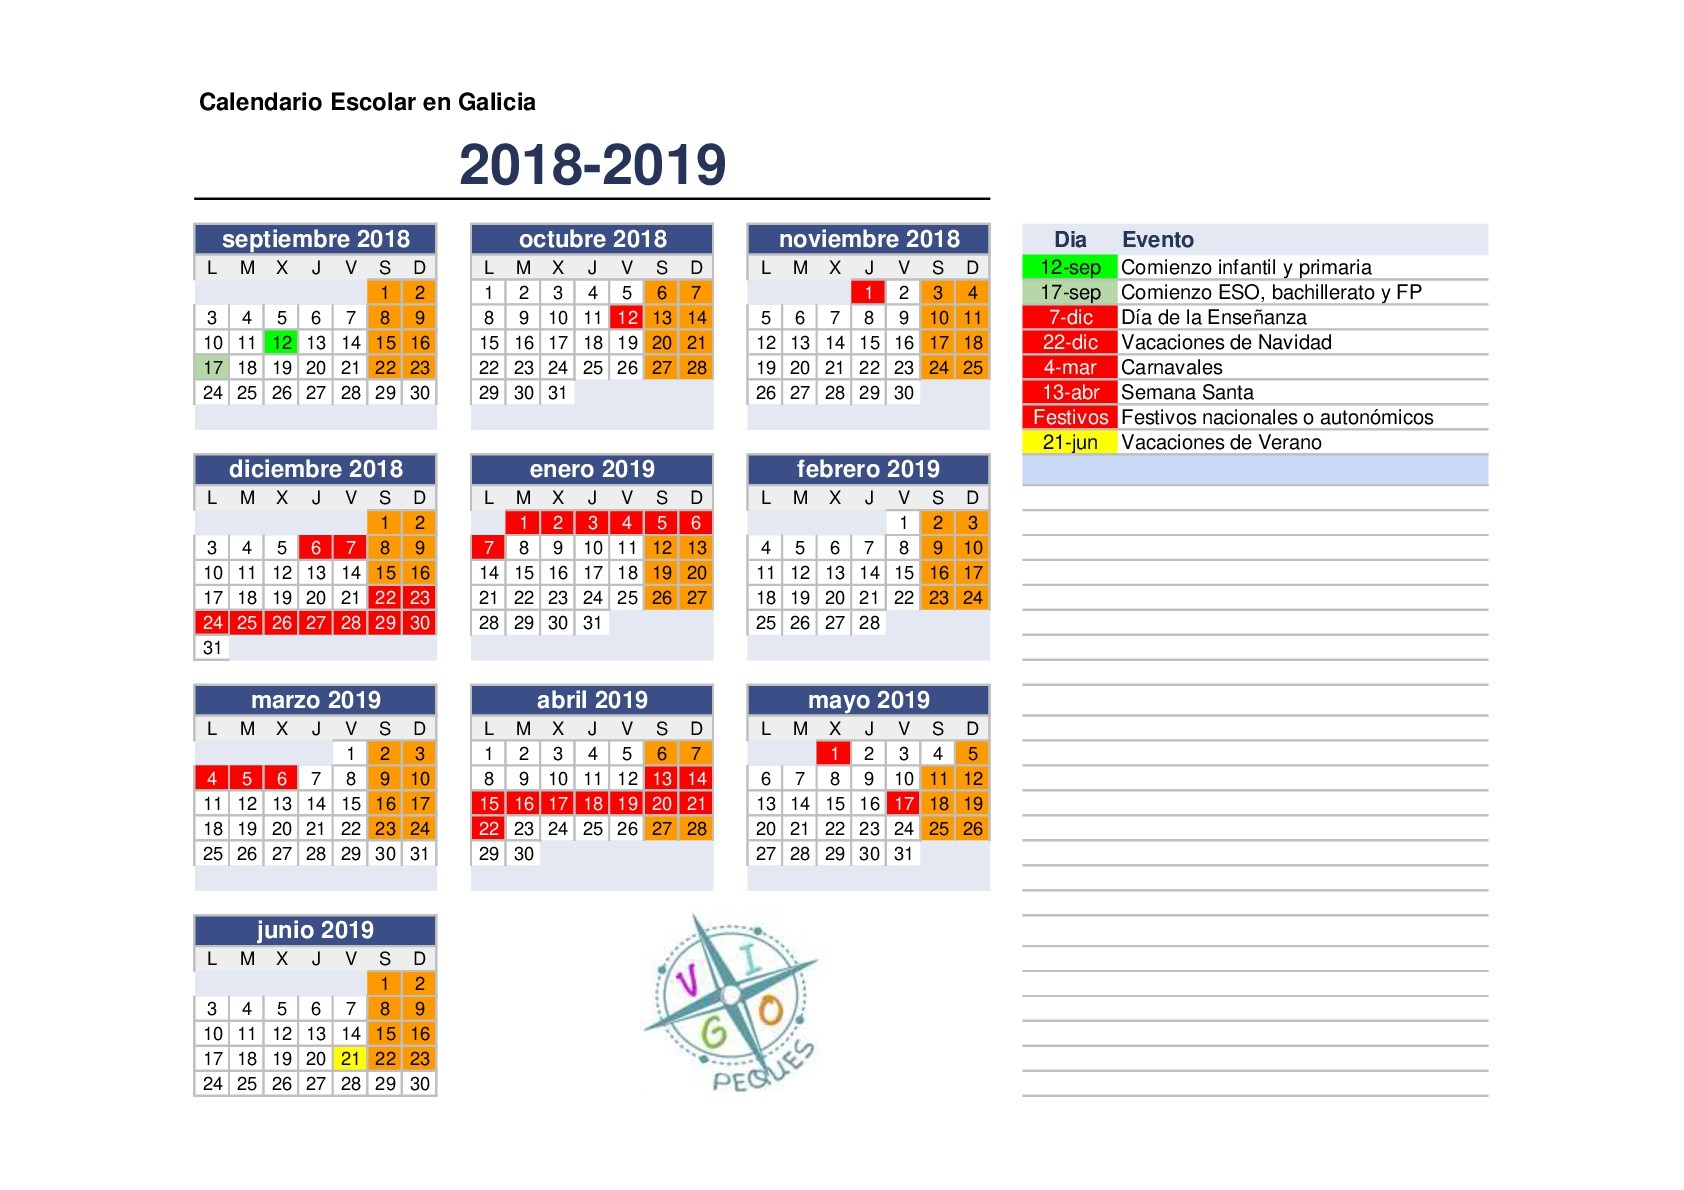 Calendario Escolar 2018 Y 2019 Sep Descargar Recientes Tag Semana Santa 2018 Calendario Escolar Sep Of Calendario Escolar 2018 Y 2019 Sep Descargar Más Populares Calendario Laboral 2019 Gva Seonegativo